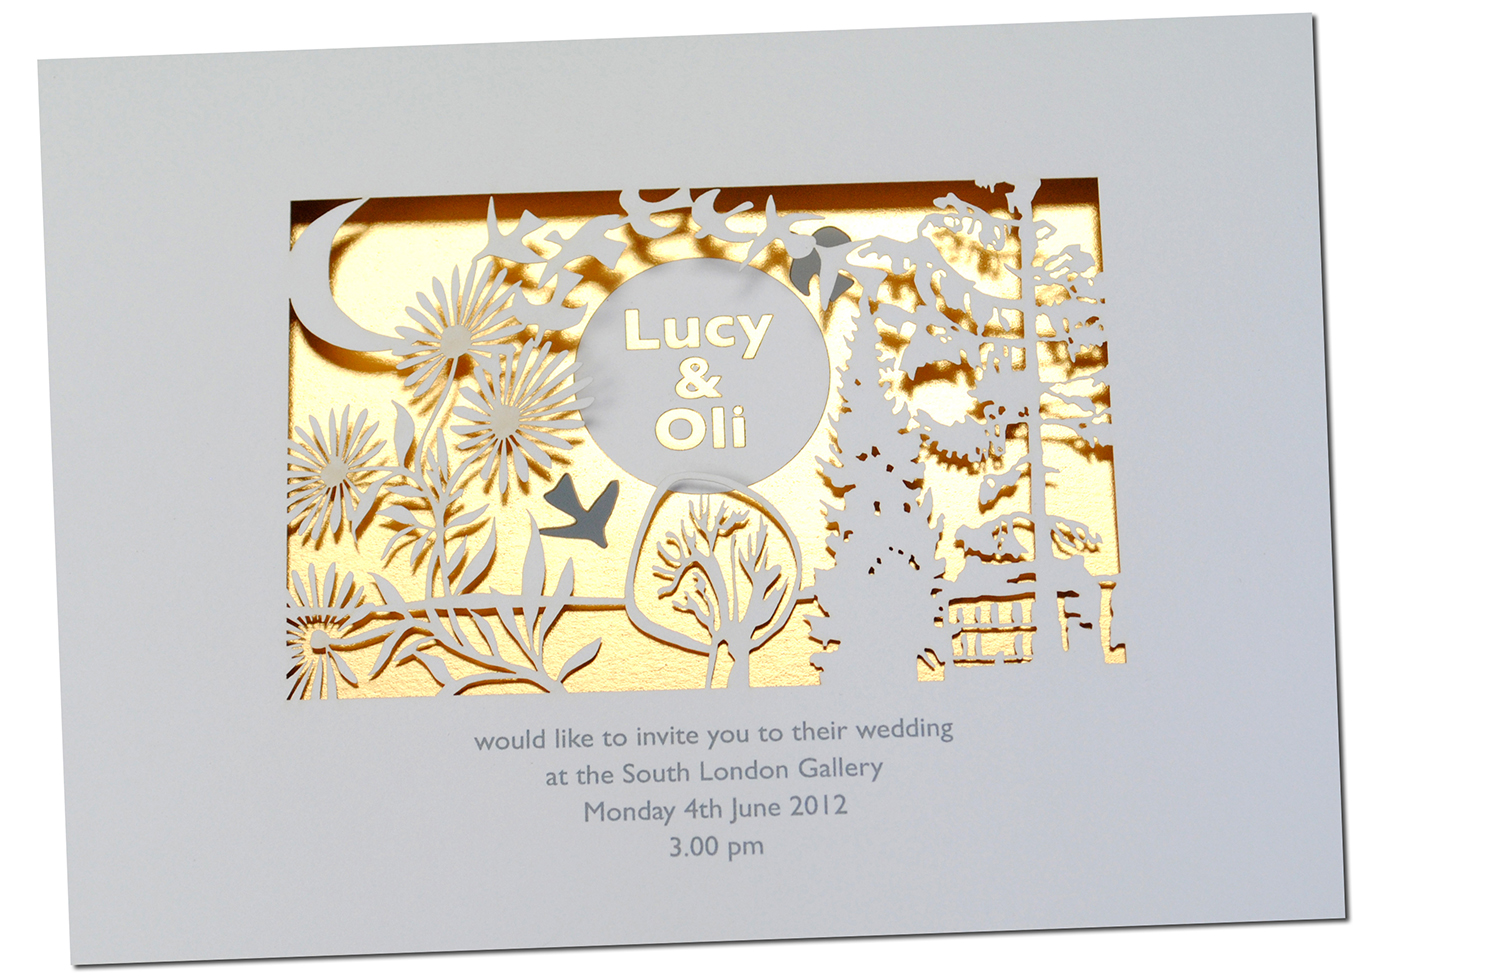 Paper cutout wedding invitation